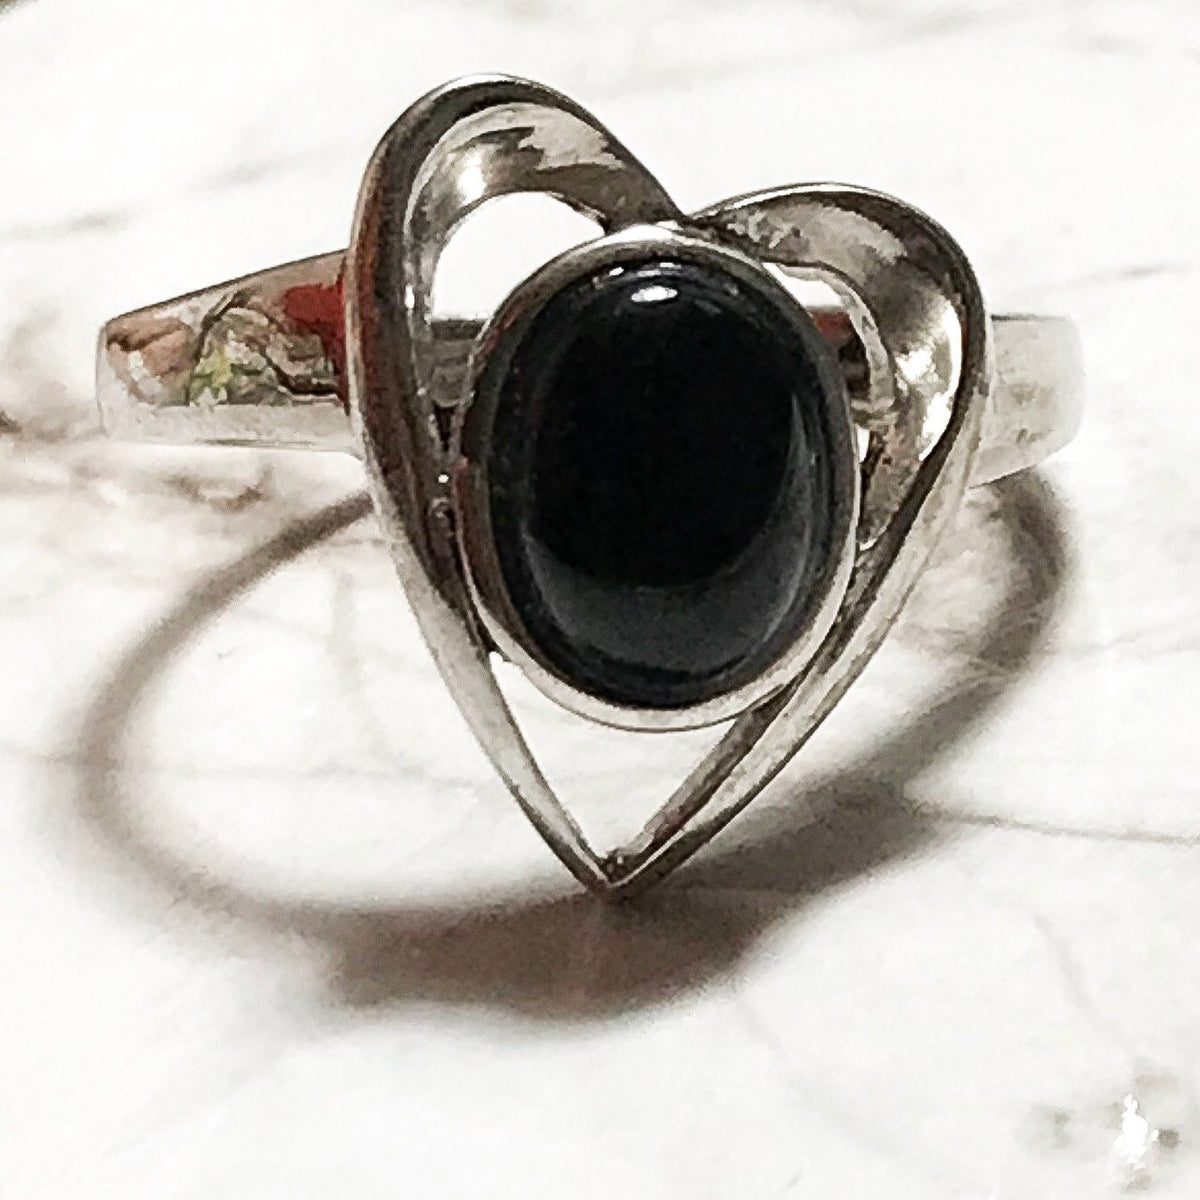 NEW 14K White Gold Layered on Sterling Silver Heart with Black Stone Ring